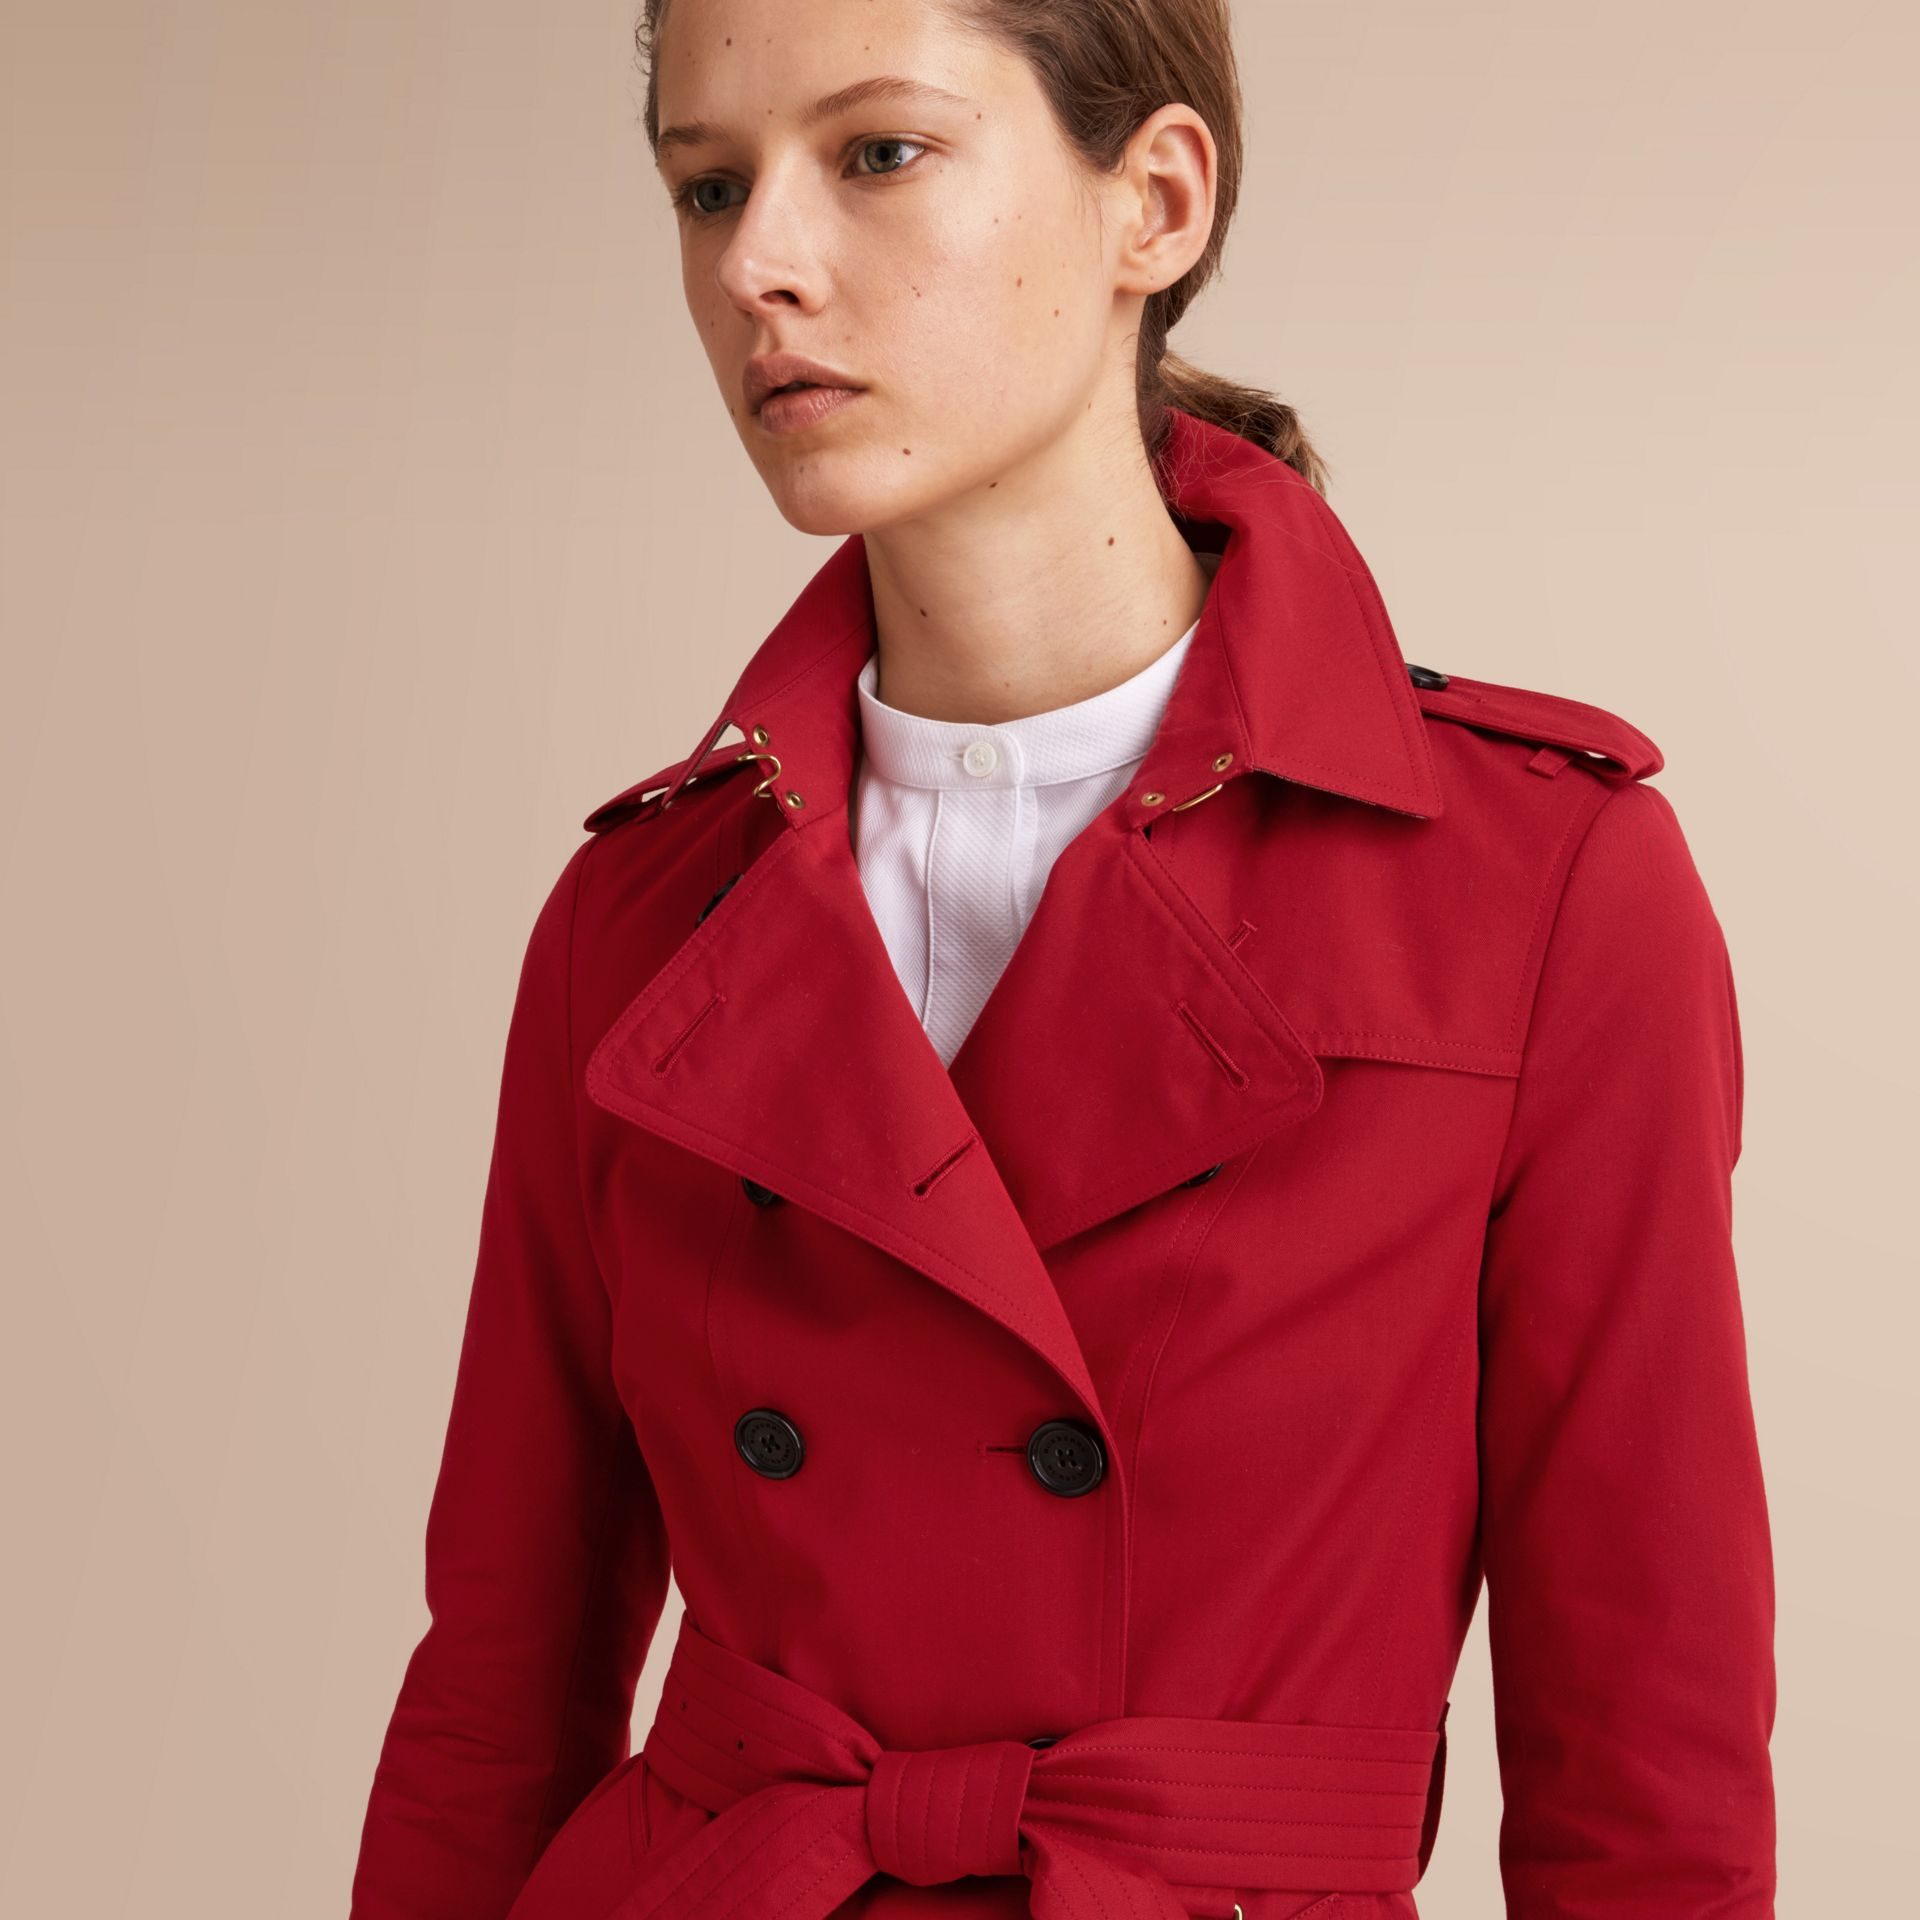 The Sandringham – Short Heritage Trench Coat in Parade Red - Women | Burberry - gallery image 6